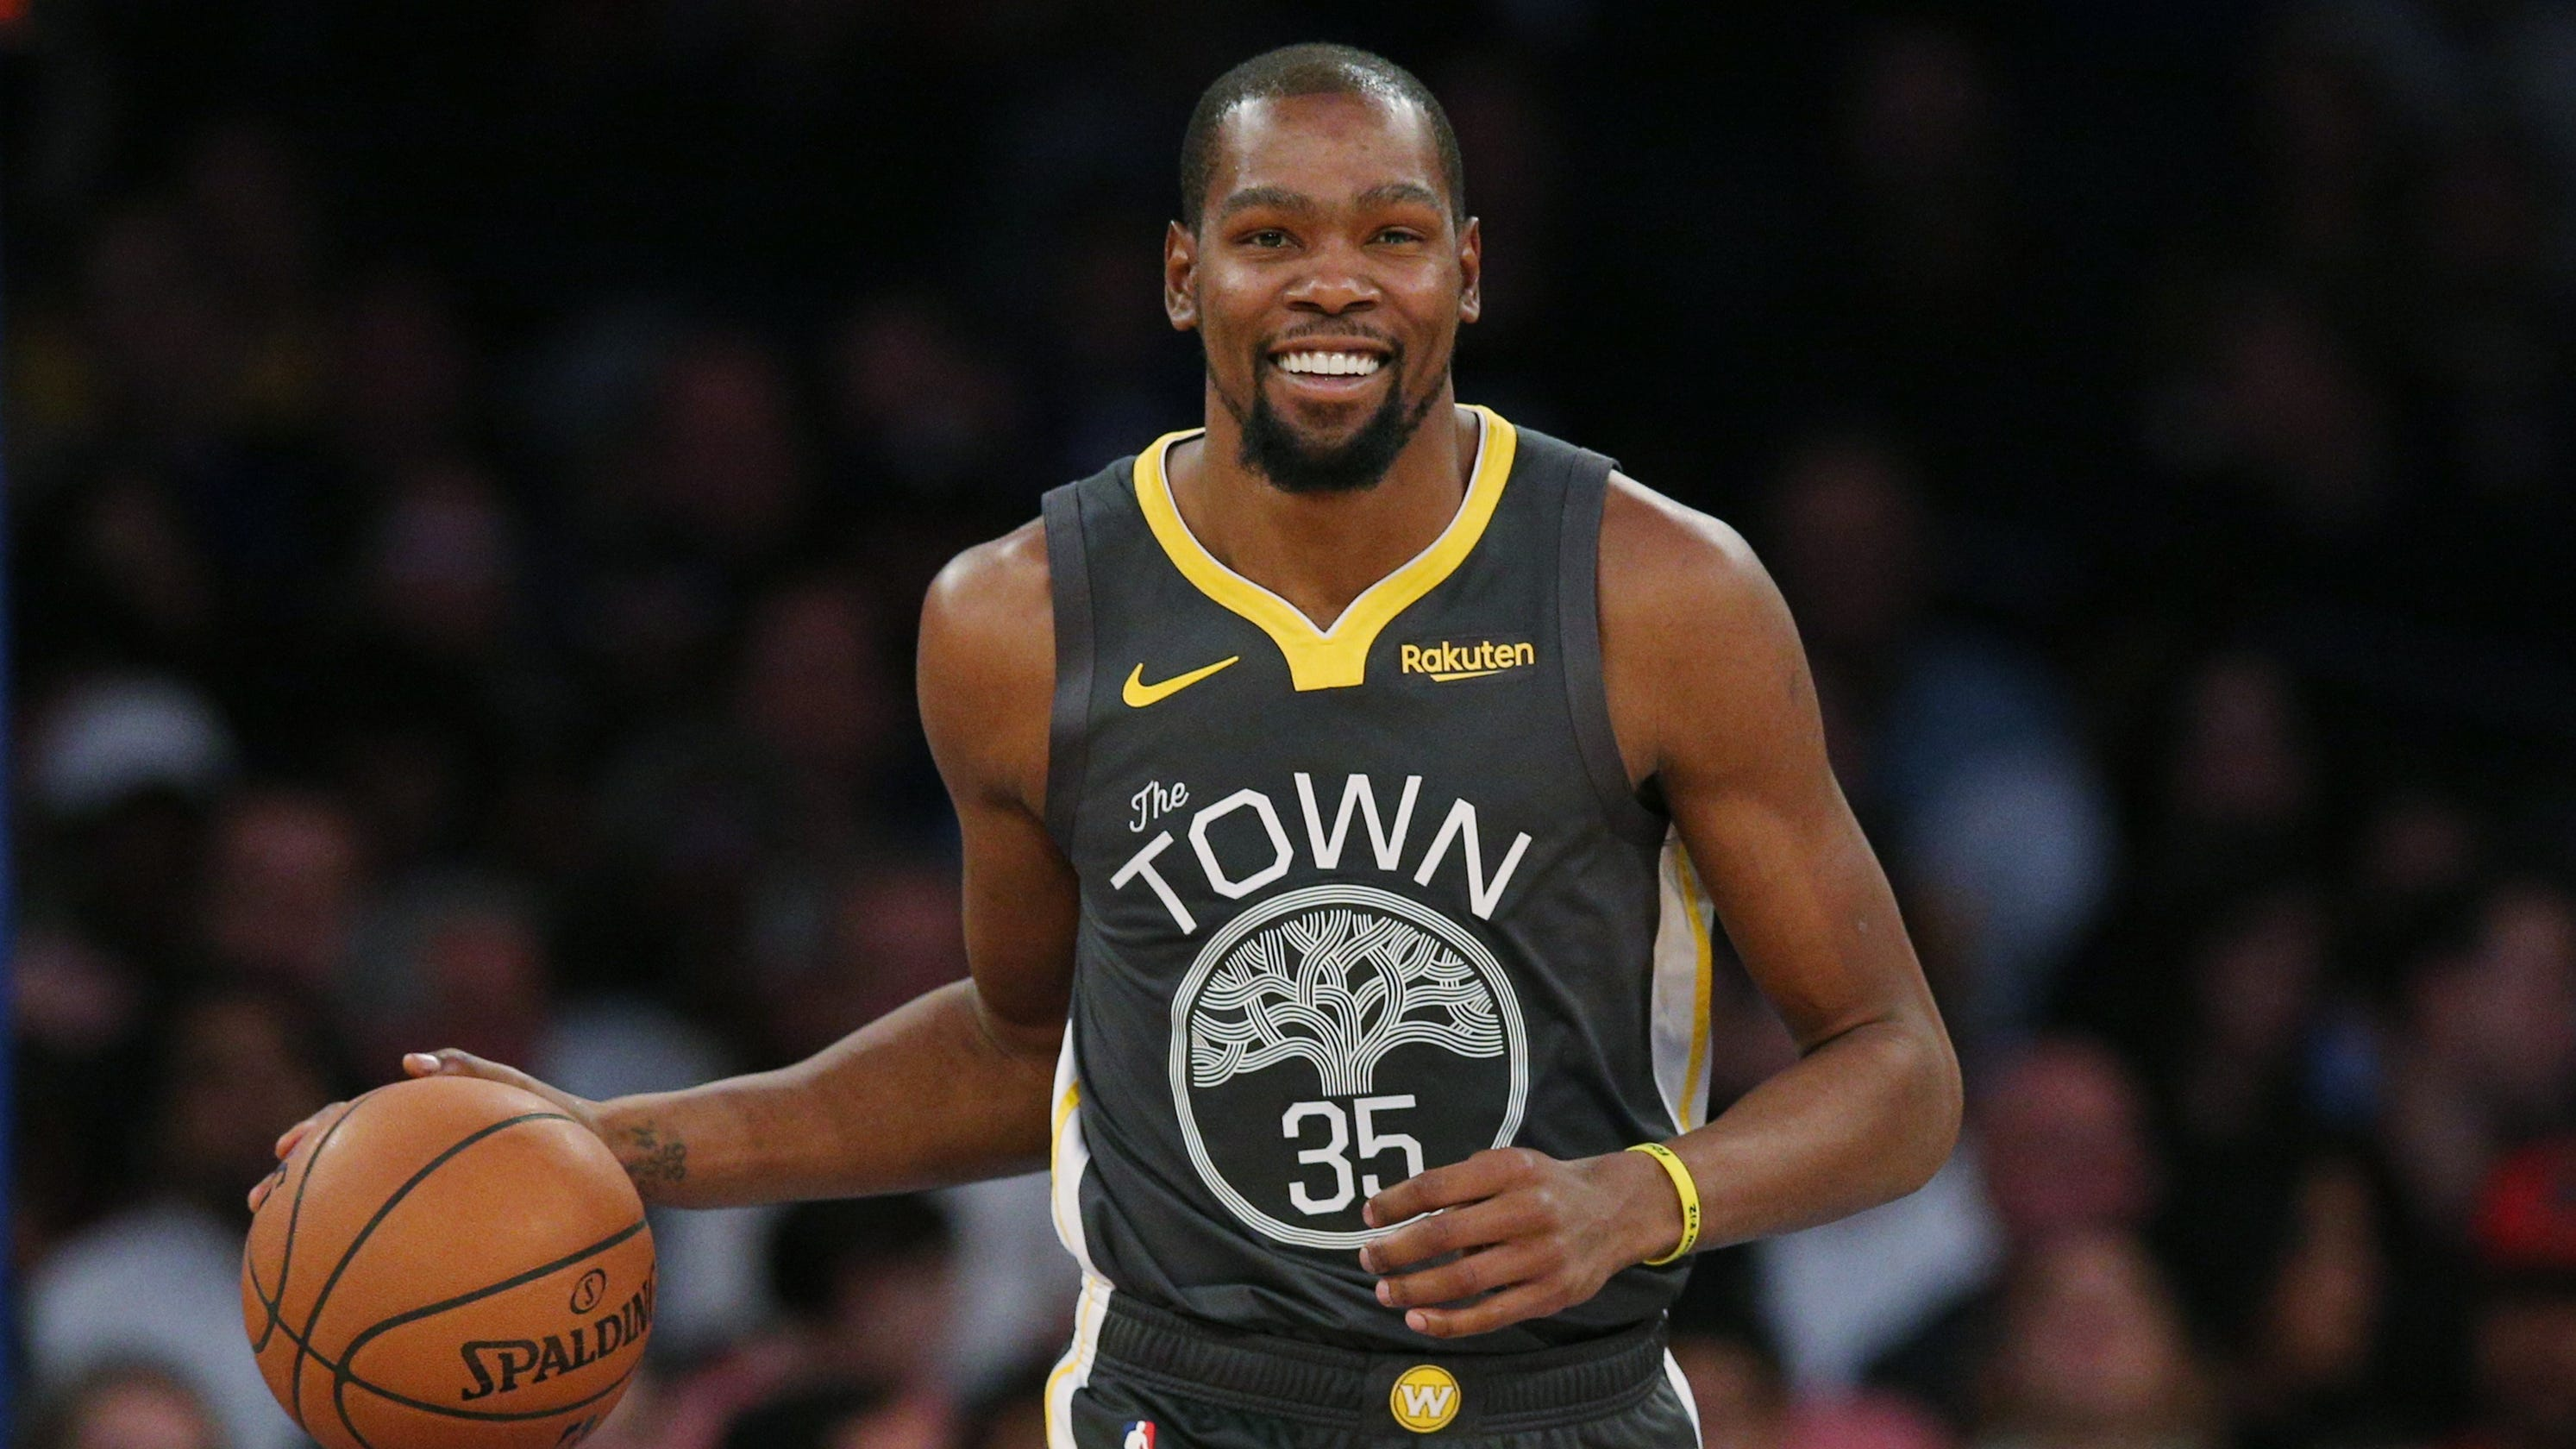 d0d1e14e9af Kevin Durant lights up MSG with 25-point fourth quarter as Warriors drub  Knicks